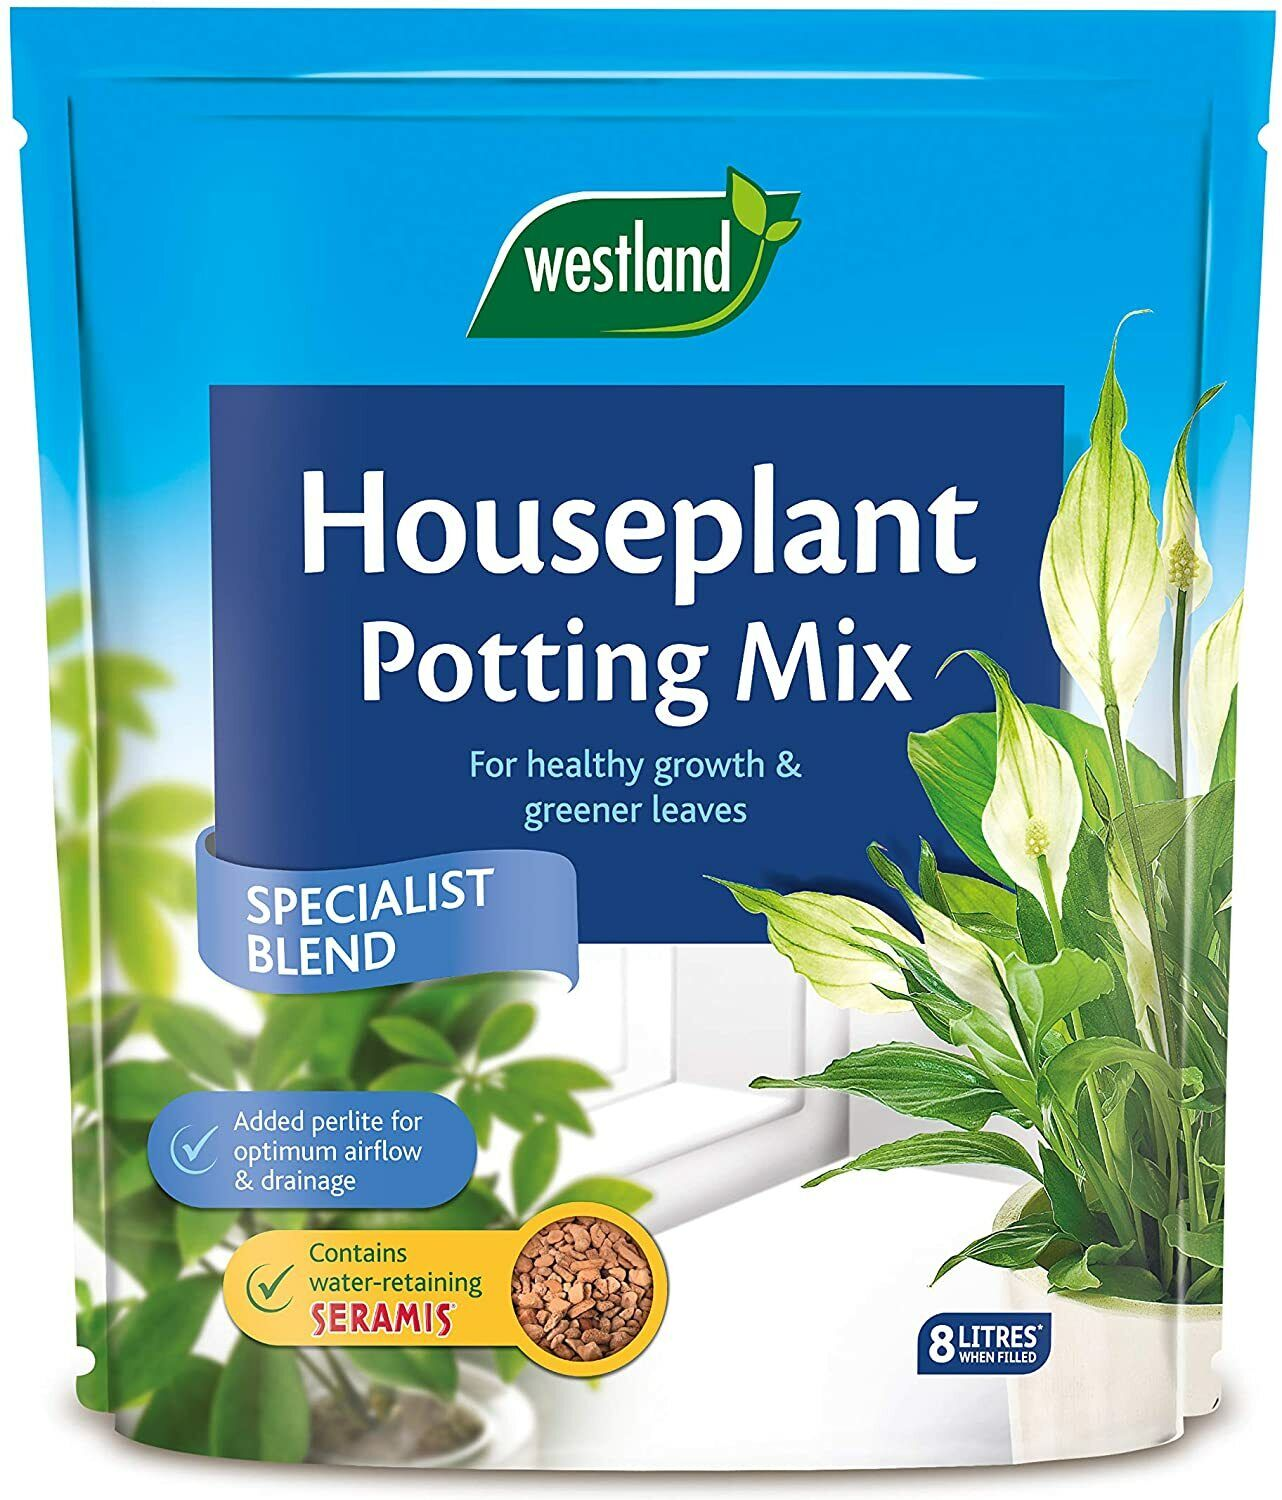 Westland 10200035 Houseplant Potting Compost Mix and Enriched with Seramis, 8 L,